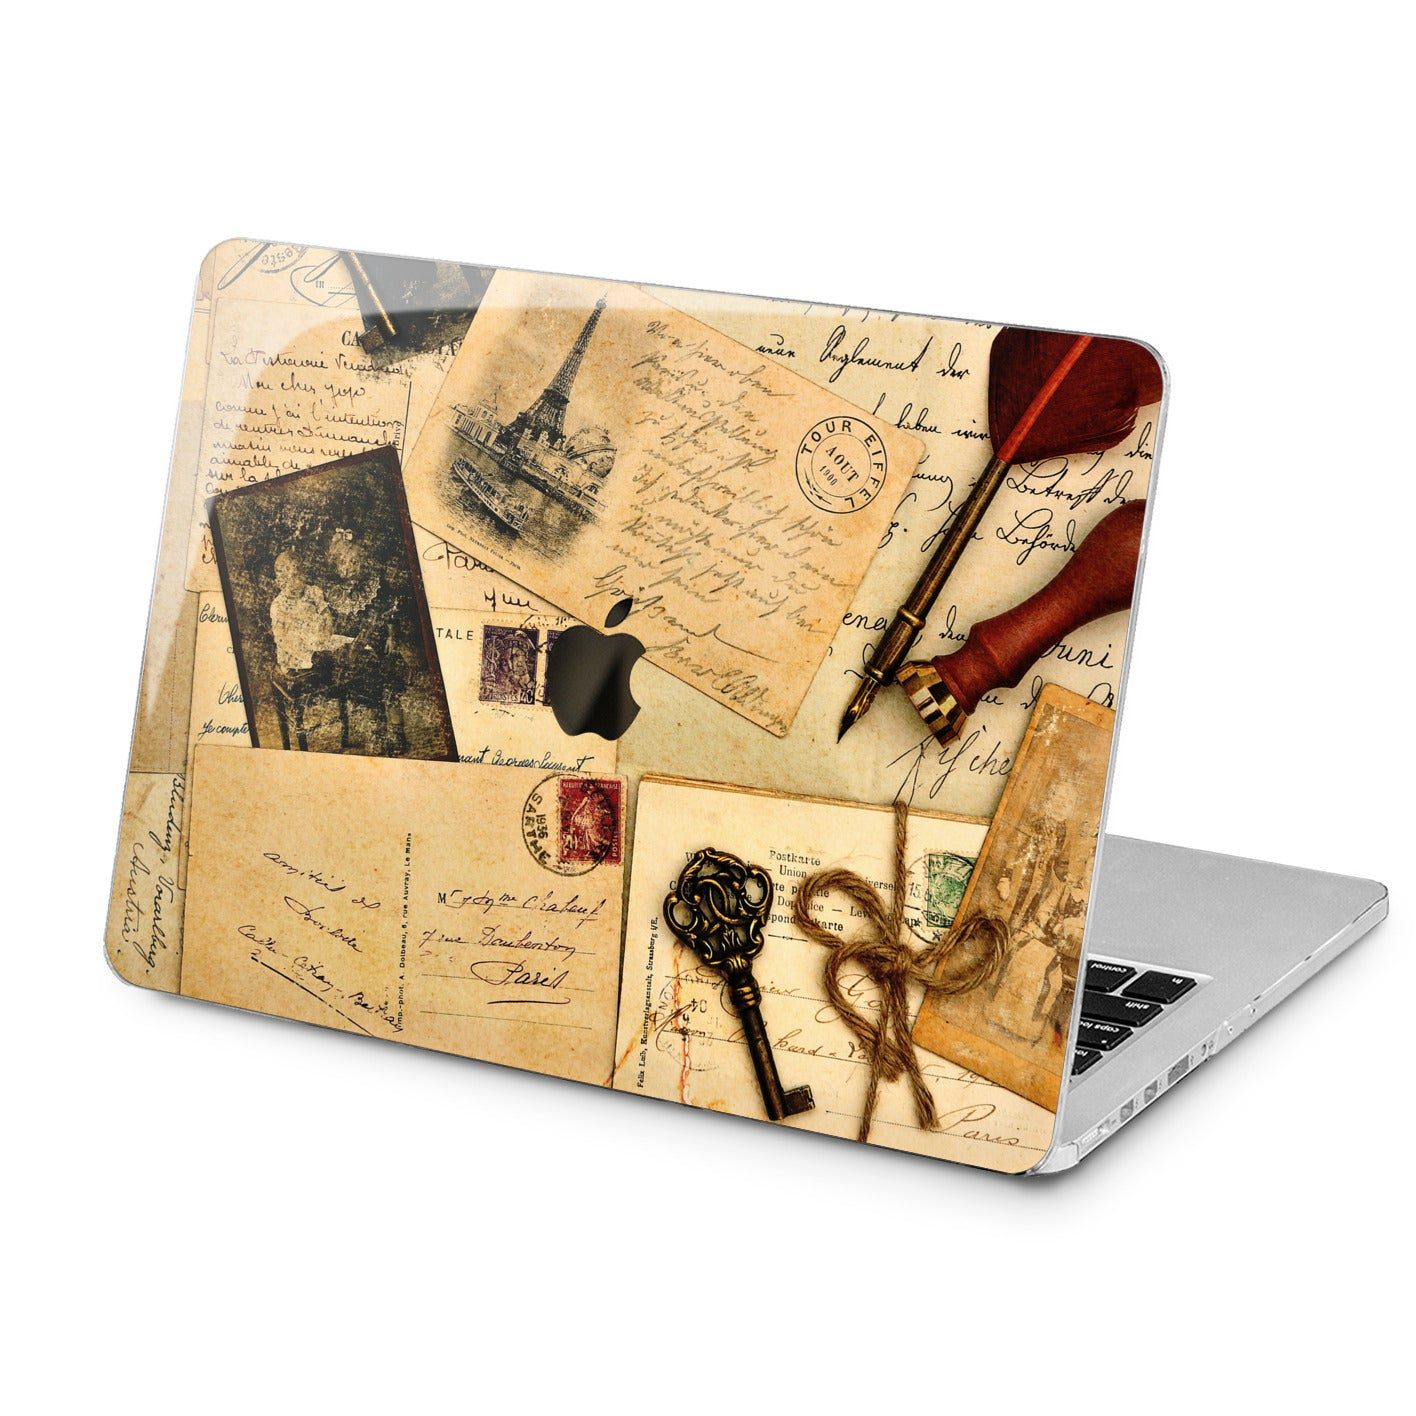 Lex Altern Lex Altern Vintage Memories Case for your Laptop Apple Macbook.